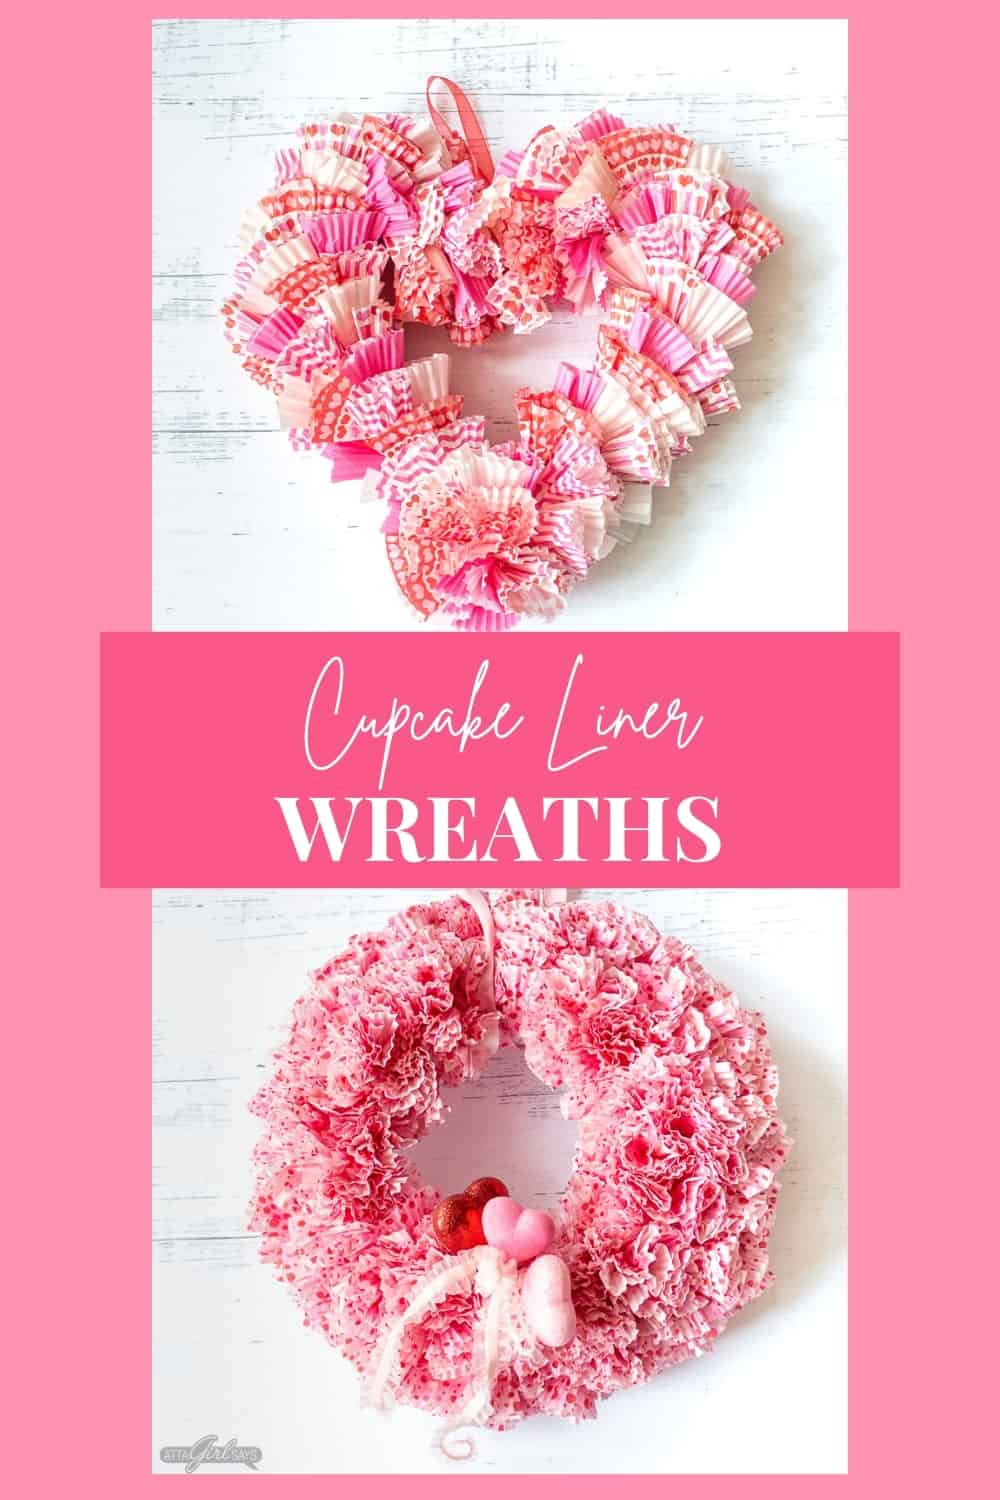 collage photo showing a round and heart shaped wreath made from cupcake liners